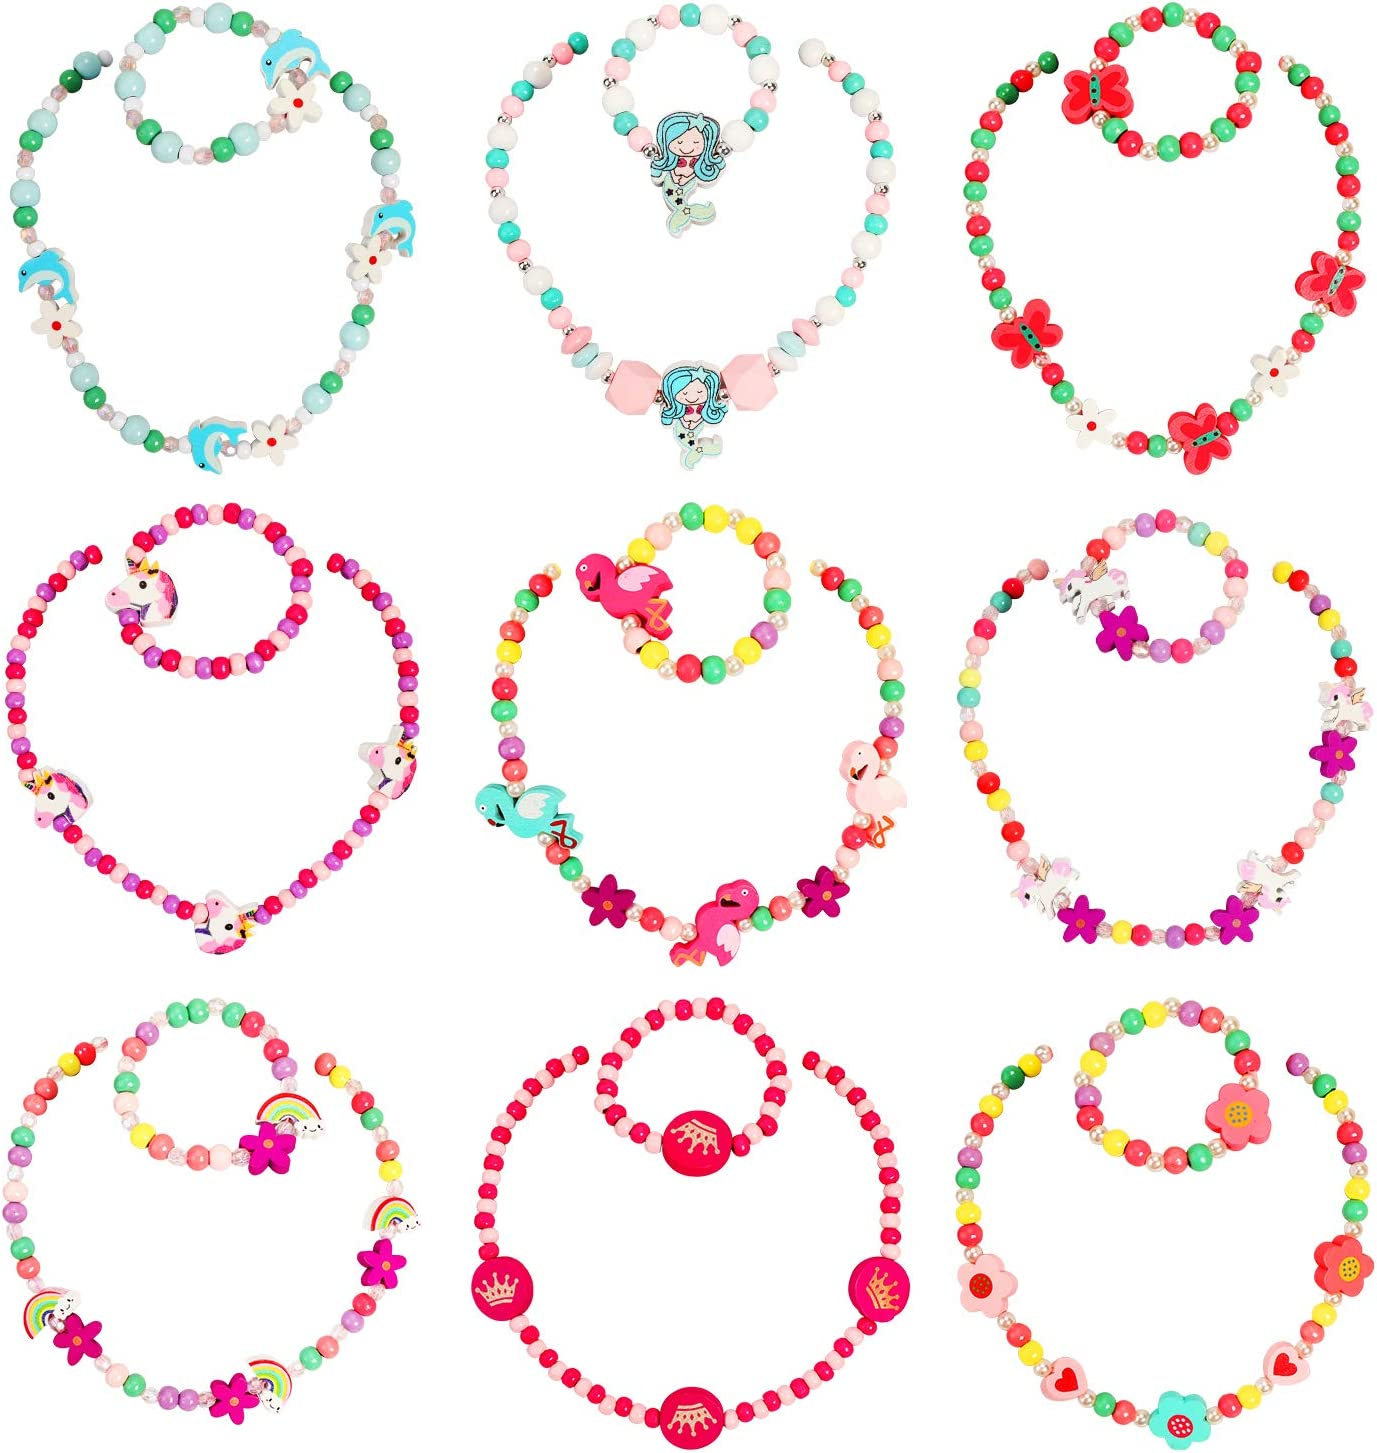 Hifot Beaded Necklace and Bracelets Mail order cheap for Unic Phoenix Mall Little 9 Sets Girl